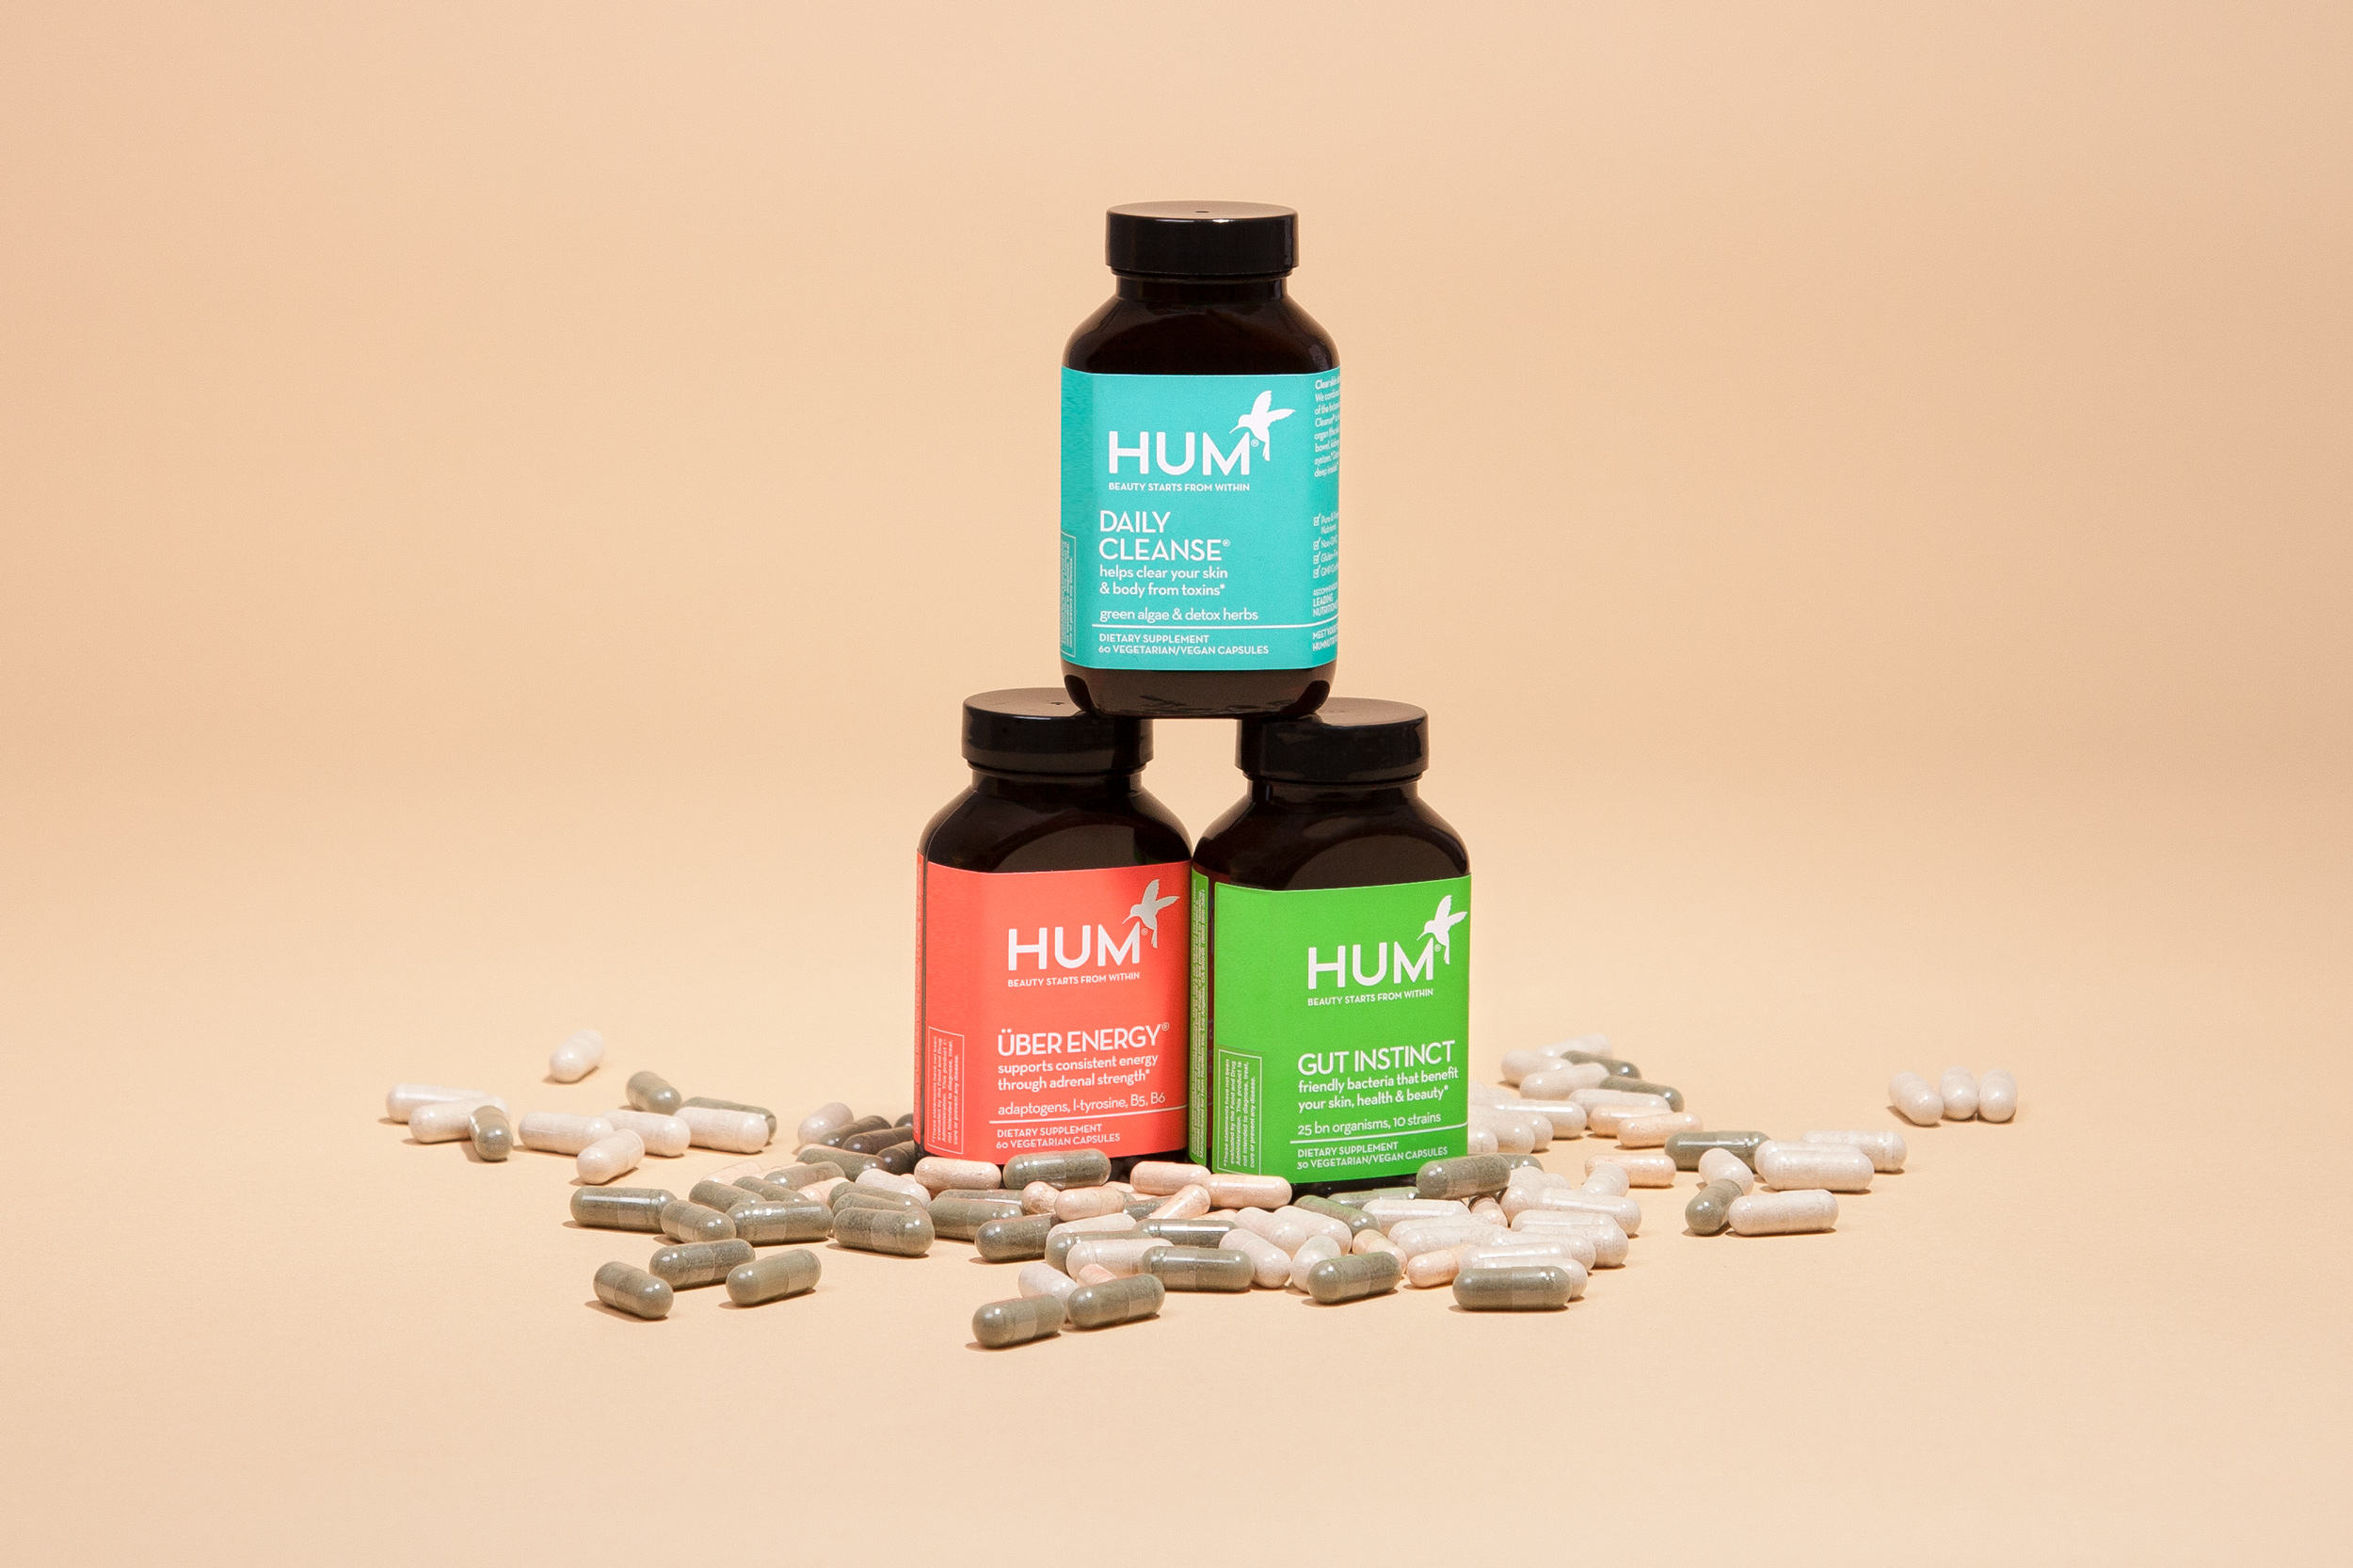 HUM NutritionActive Investment - HUM Nutrition is a branded vitamins and supplements business selling products focused on skincare, body and lifestyle. HUM is a first-mover in the beauty nutrition category, with the motto that what you put into your body plays a pivotal role in the outcome of your appearance.www.humnutrition.com